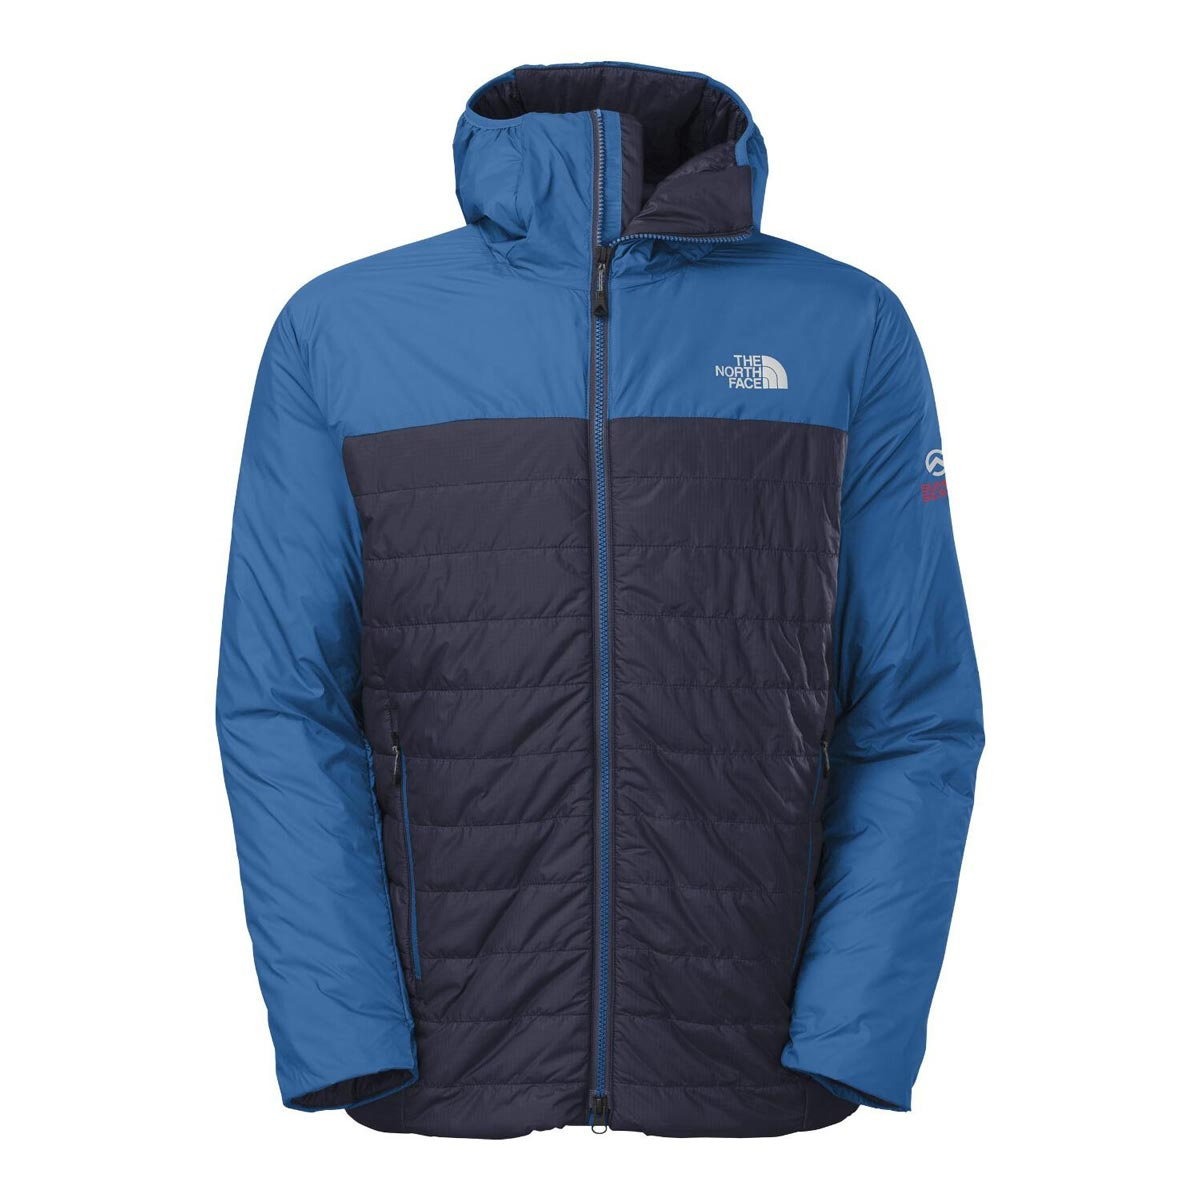 Arenite vest by The North Face